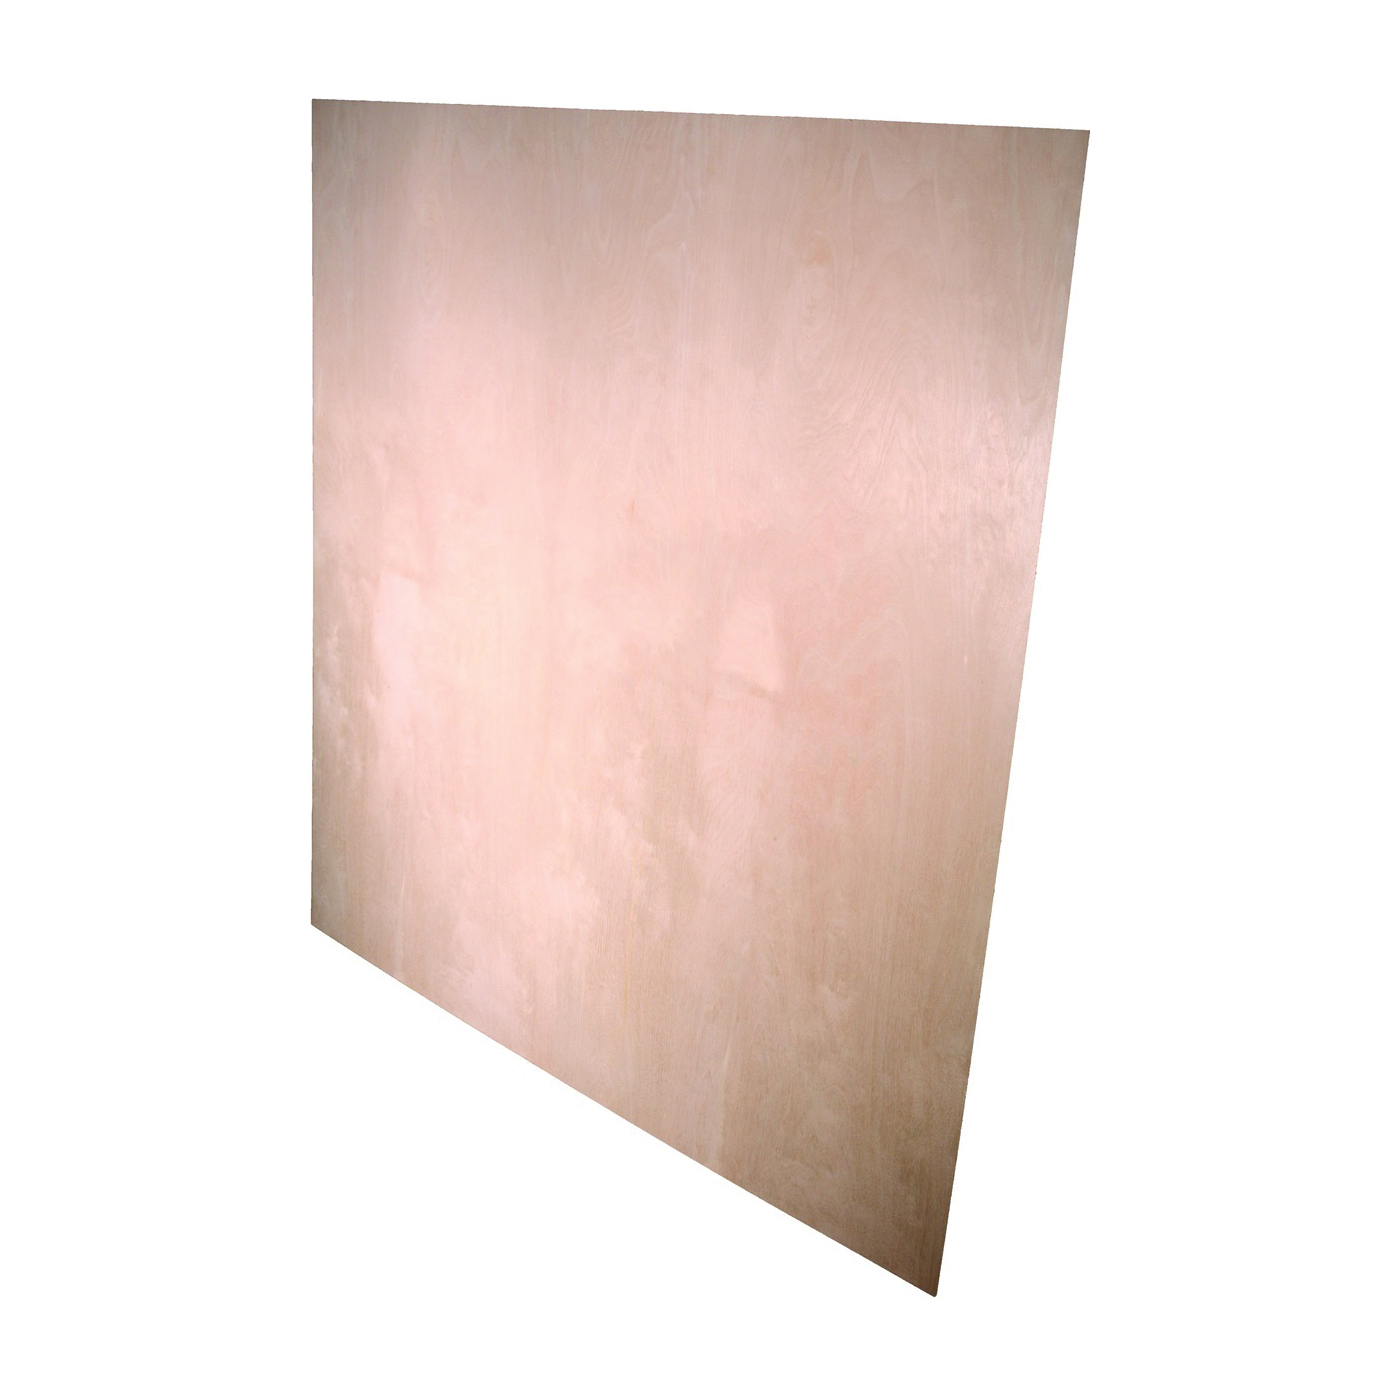 Picture of ALEXANDRIA Moulding PY006-PY048C Plywood